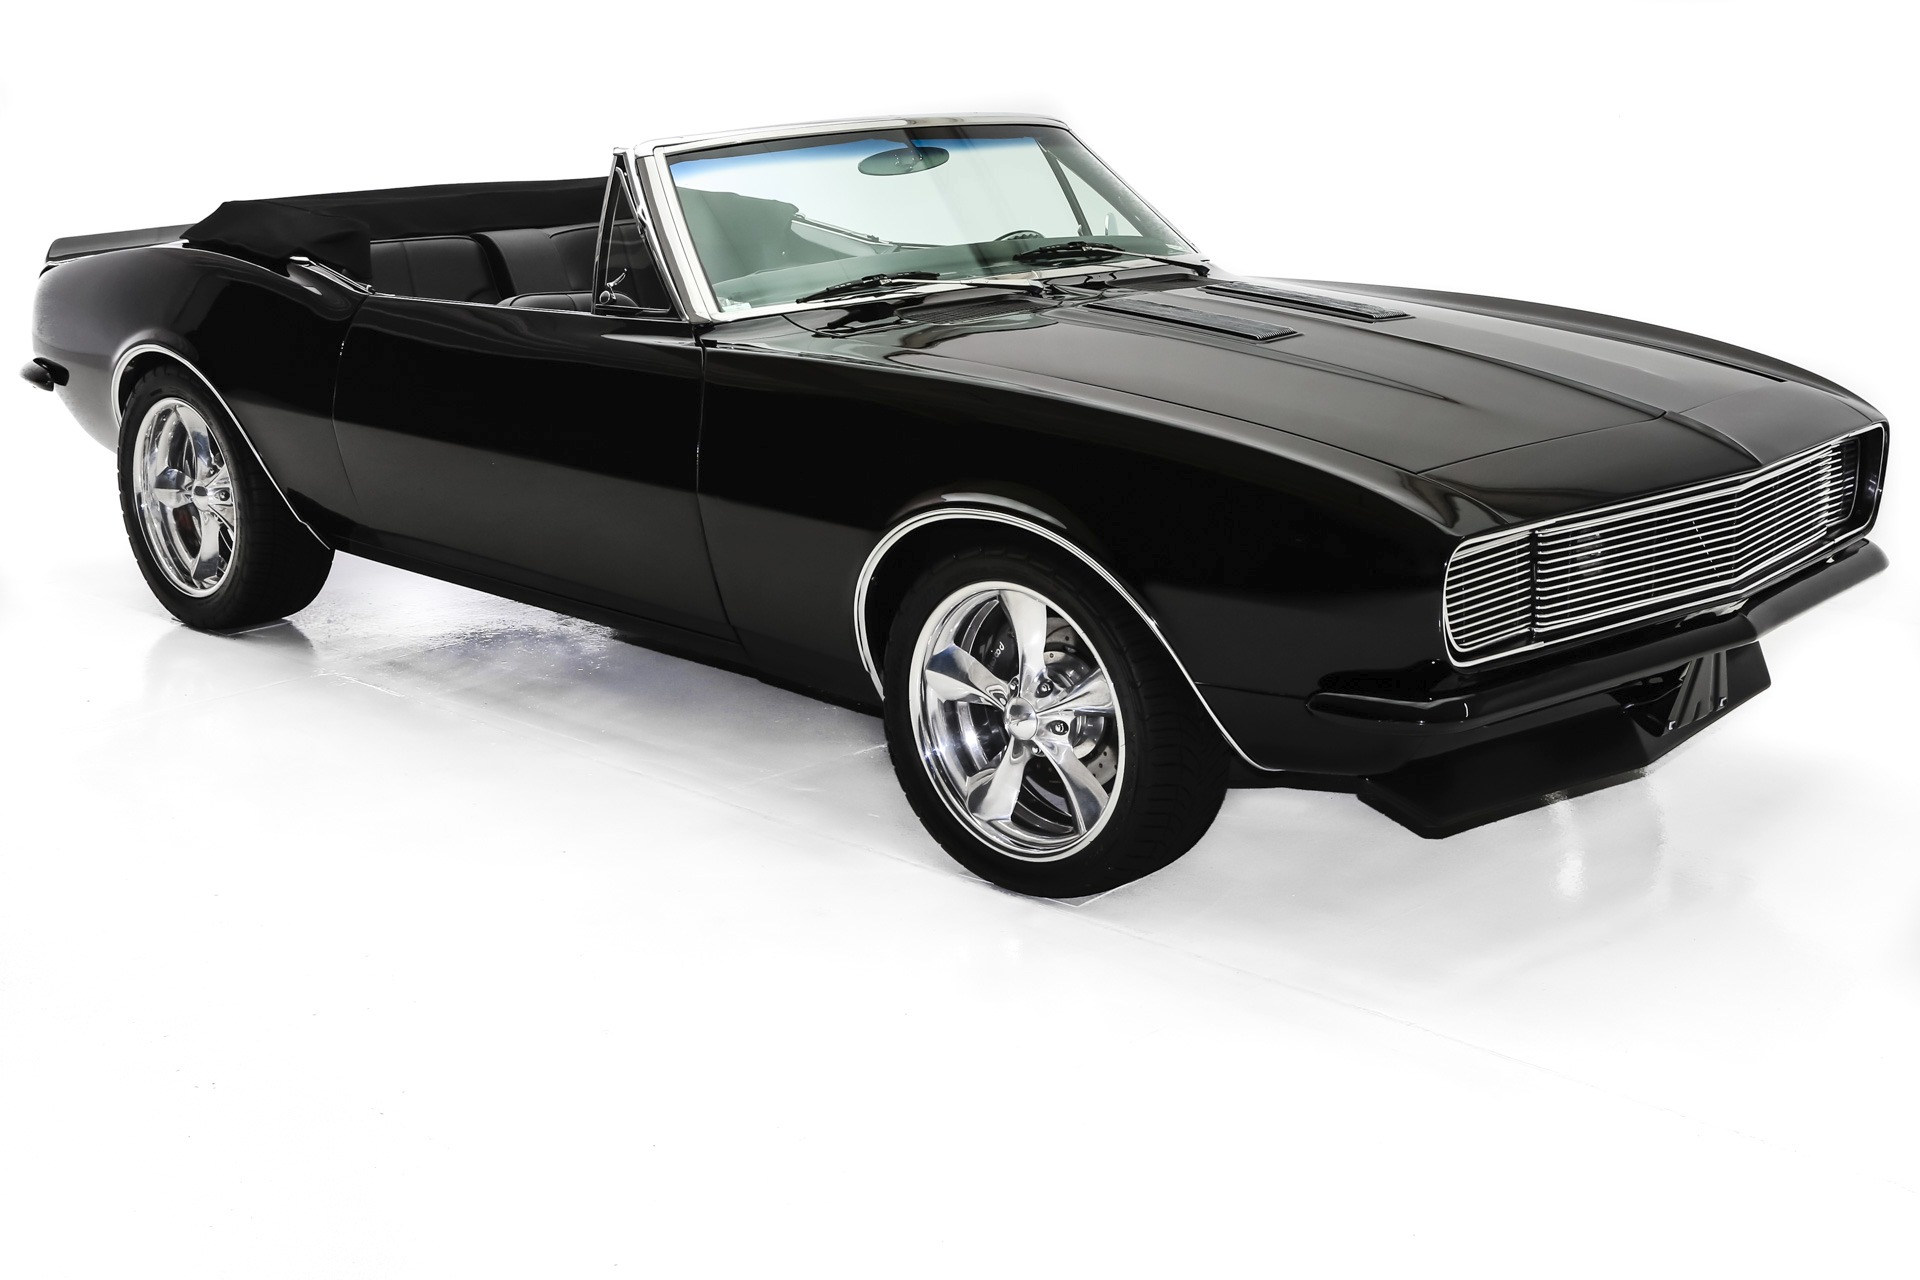 For Sale Used 1967 Chevrolet Camaro Convertible Pro-Tour | American Dream Machines Des Moines IA 50309